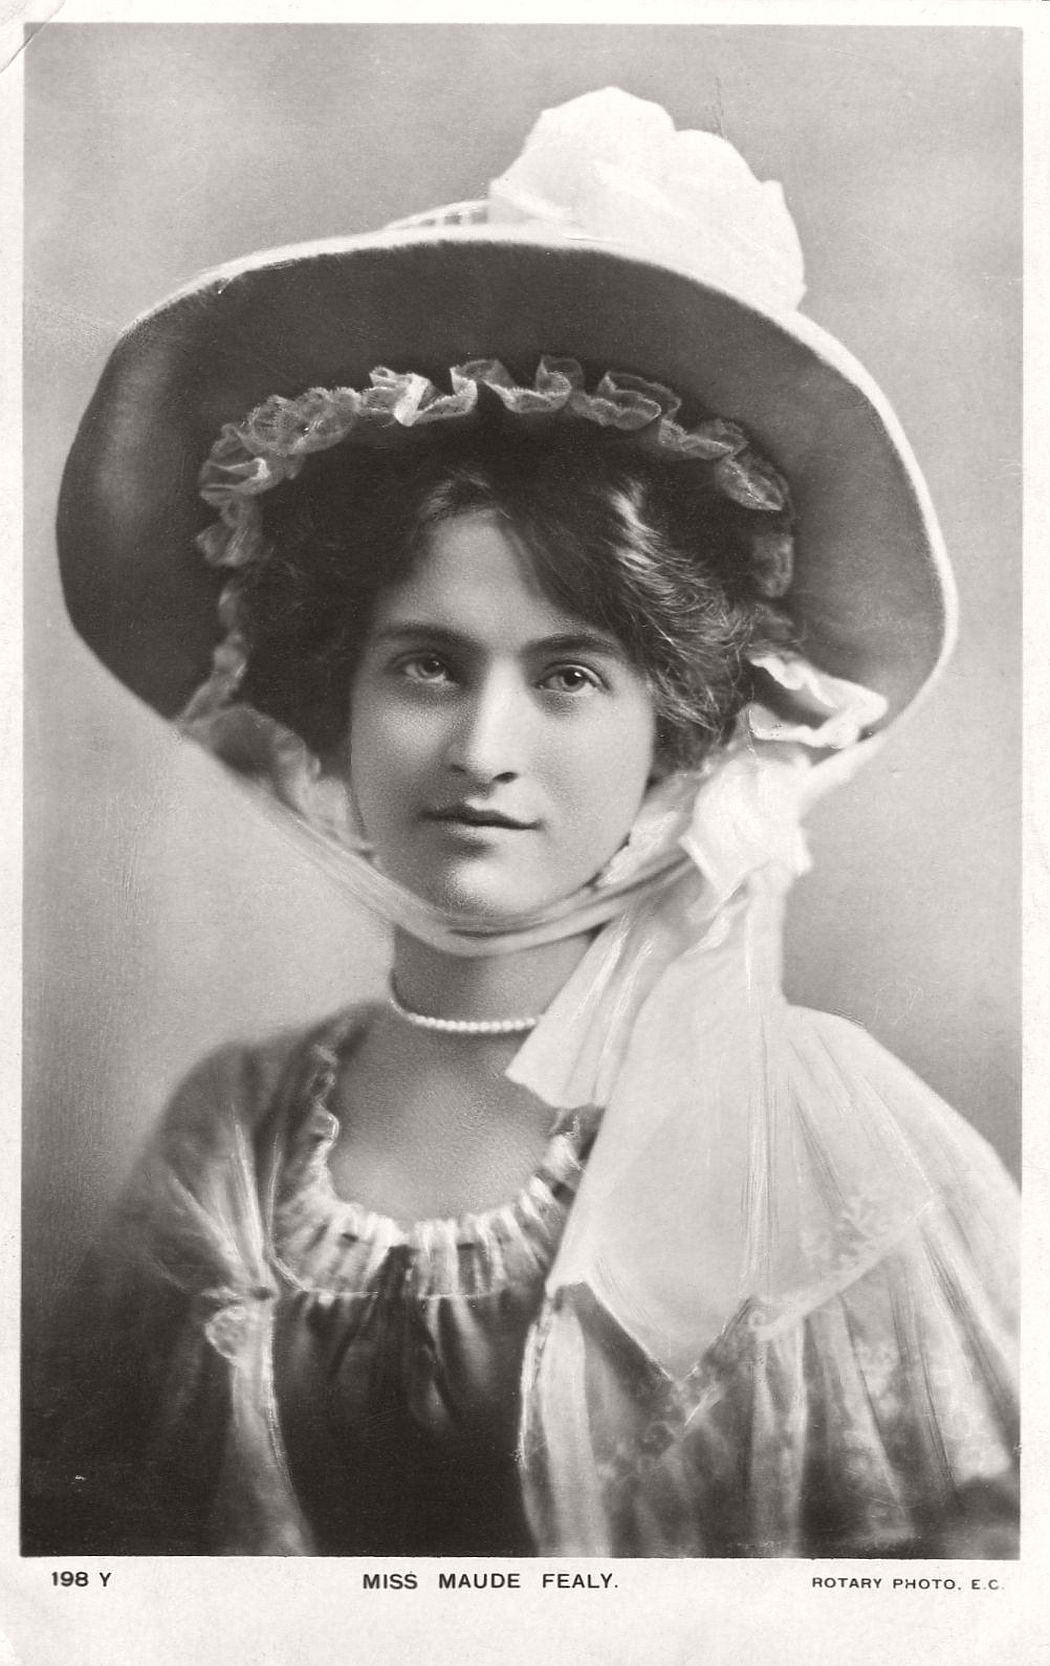 vintage-postcard-of-actress-miss-maude-fealy-1900s-early-xx-century-34